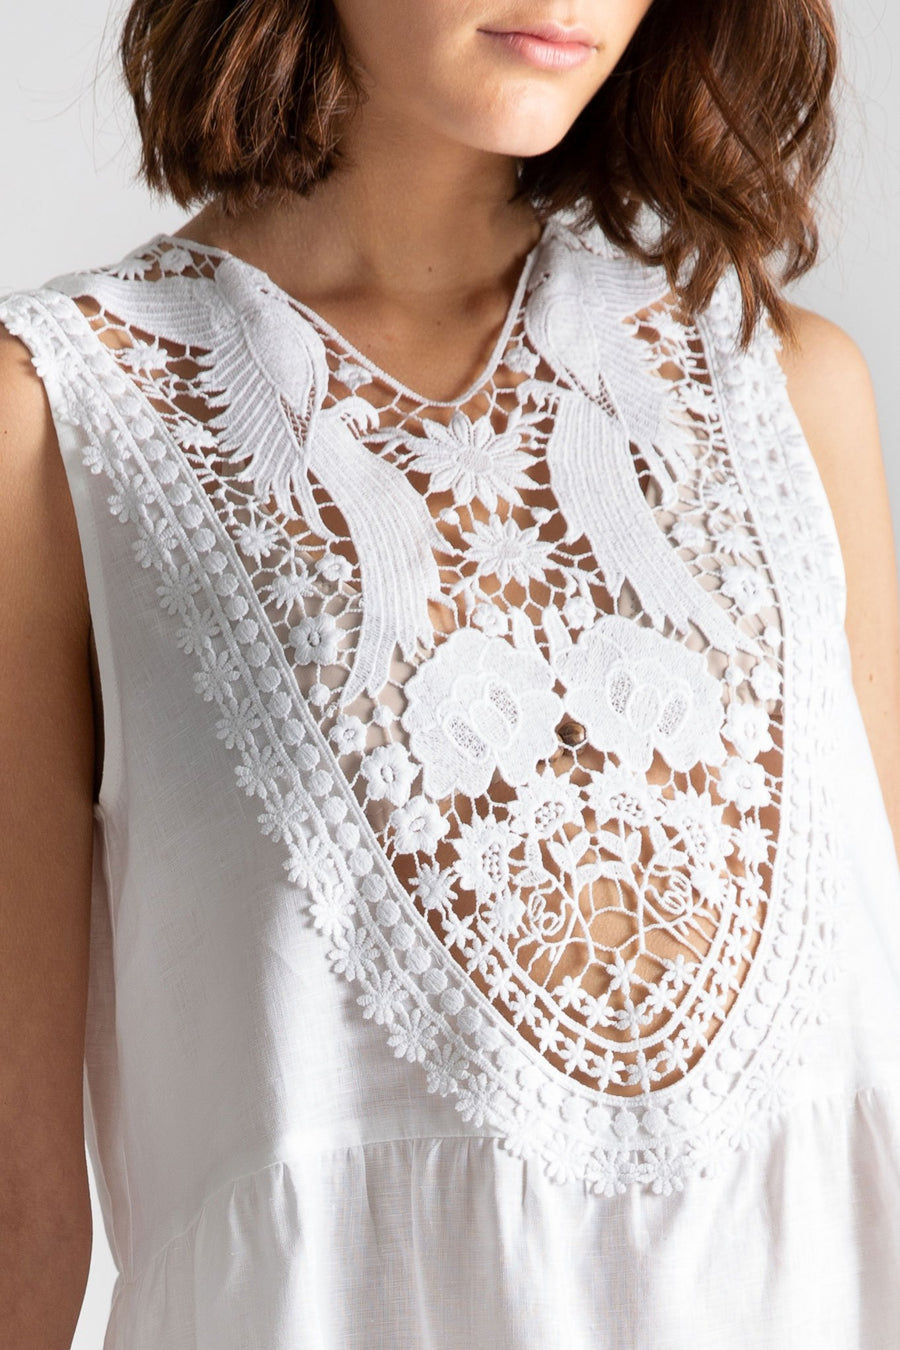 This is a detail photo of a white yolk on top of a short linen dress. The yolk design has flowers and birds and shows through to her bikini top.